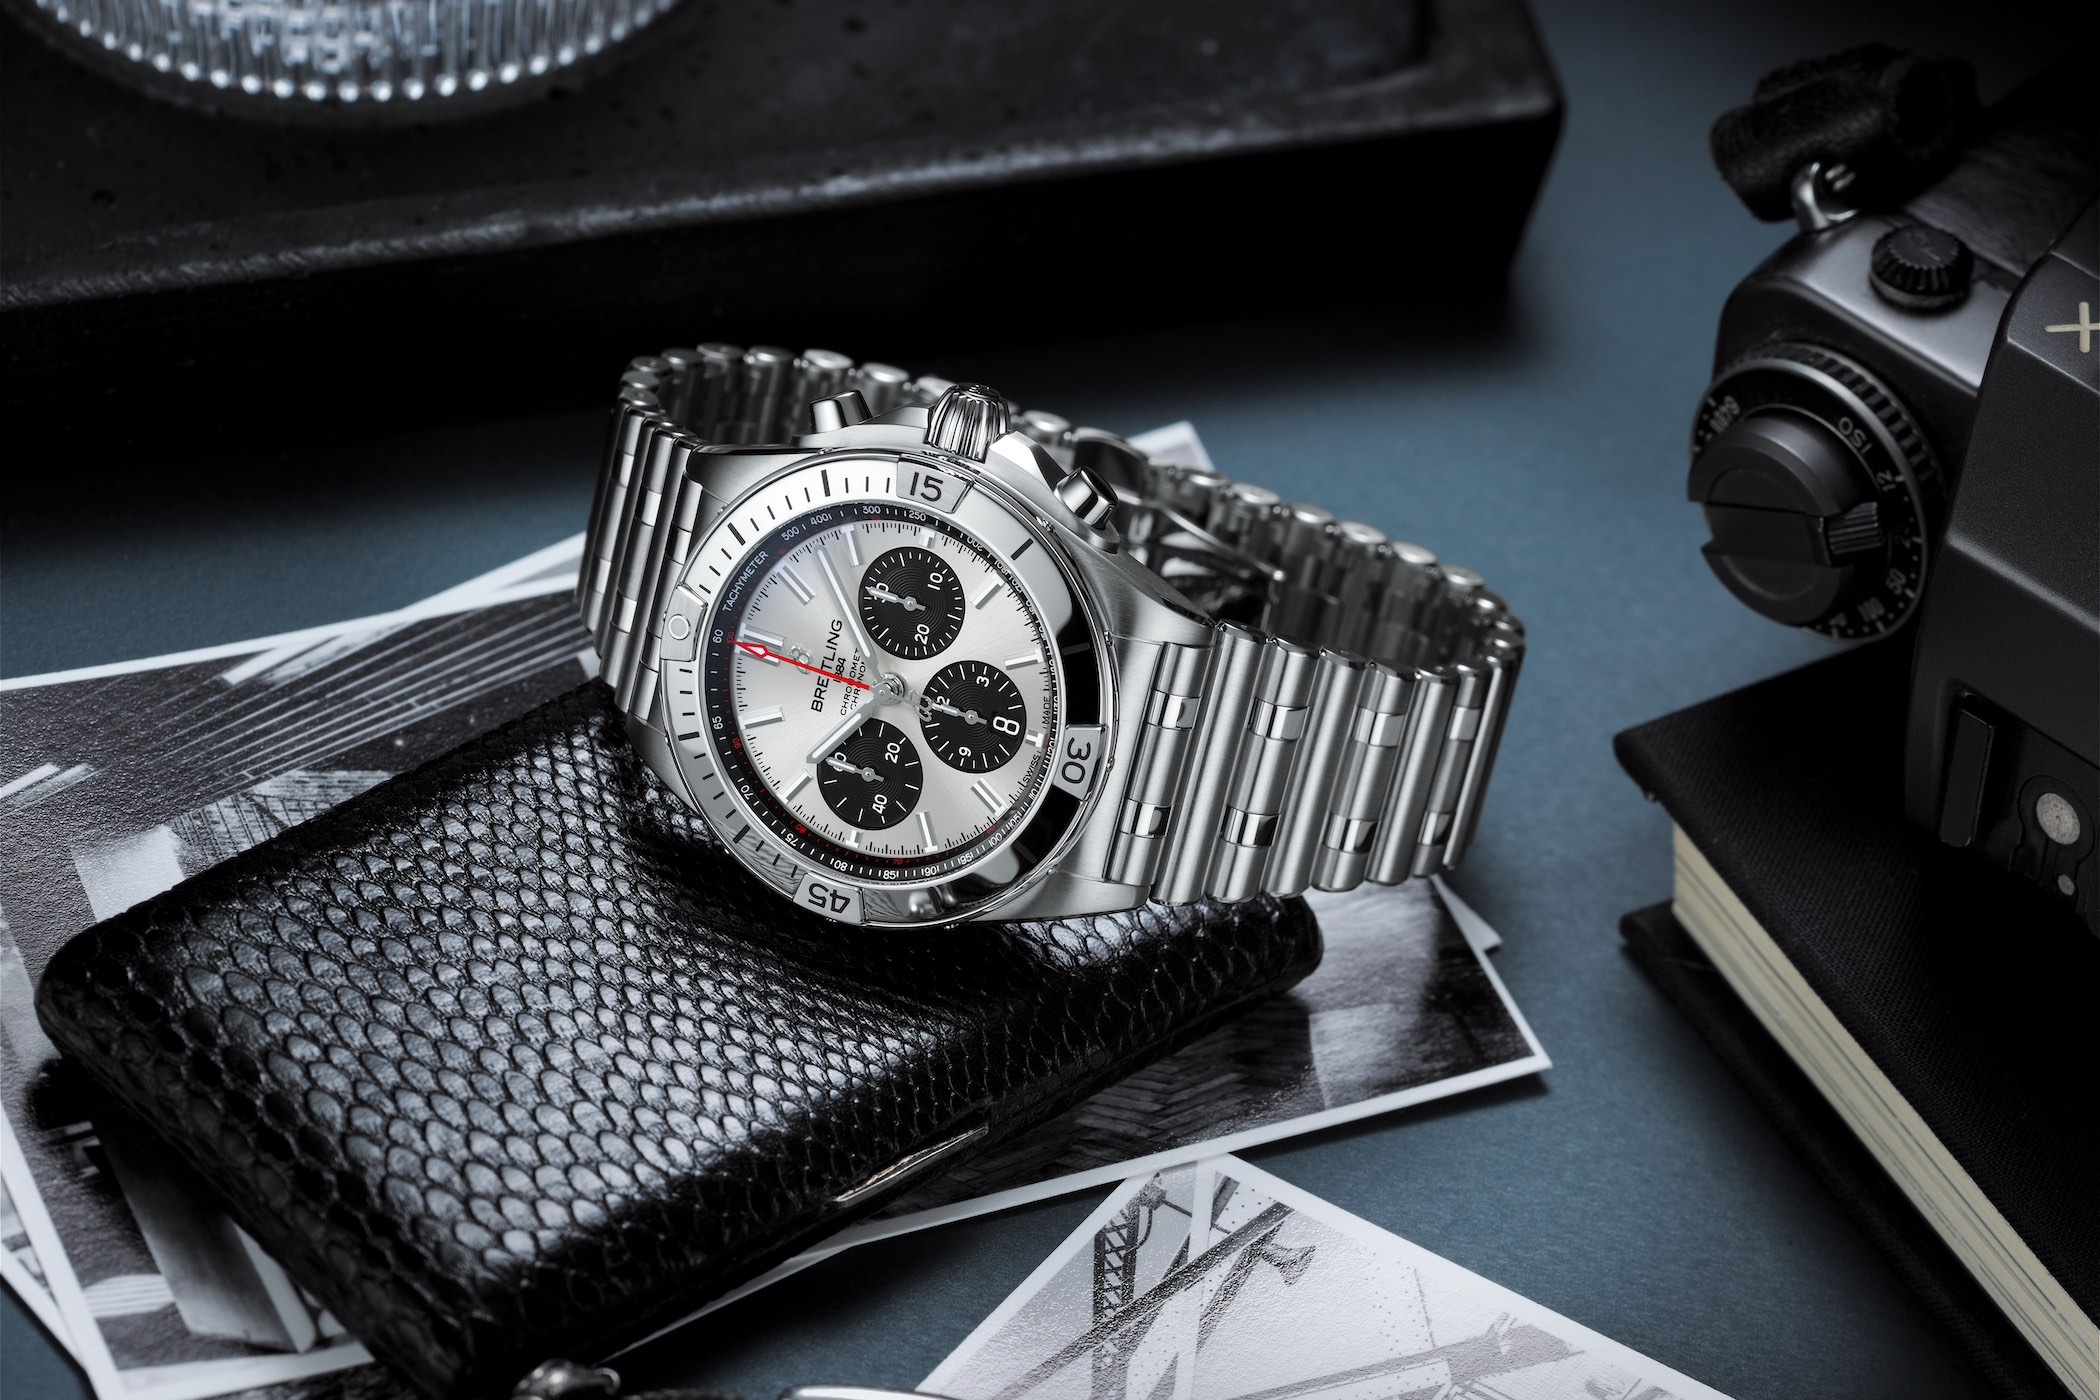 2020 breitling chronomat B01 42 collection